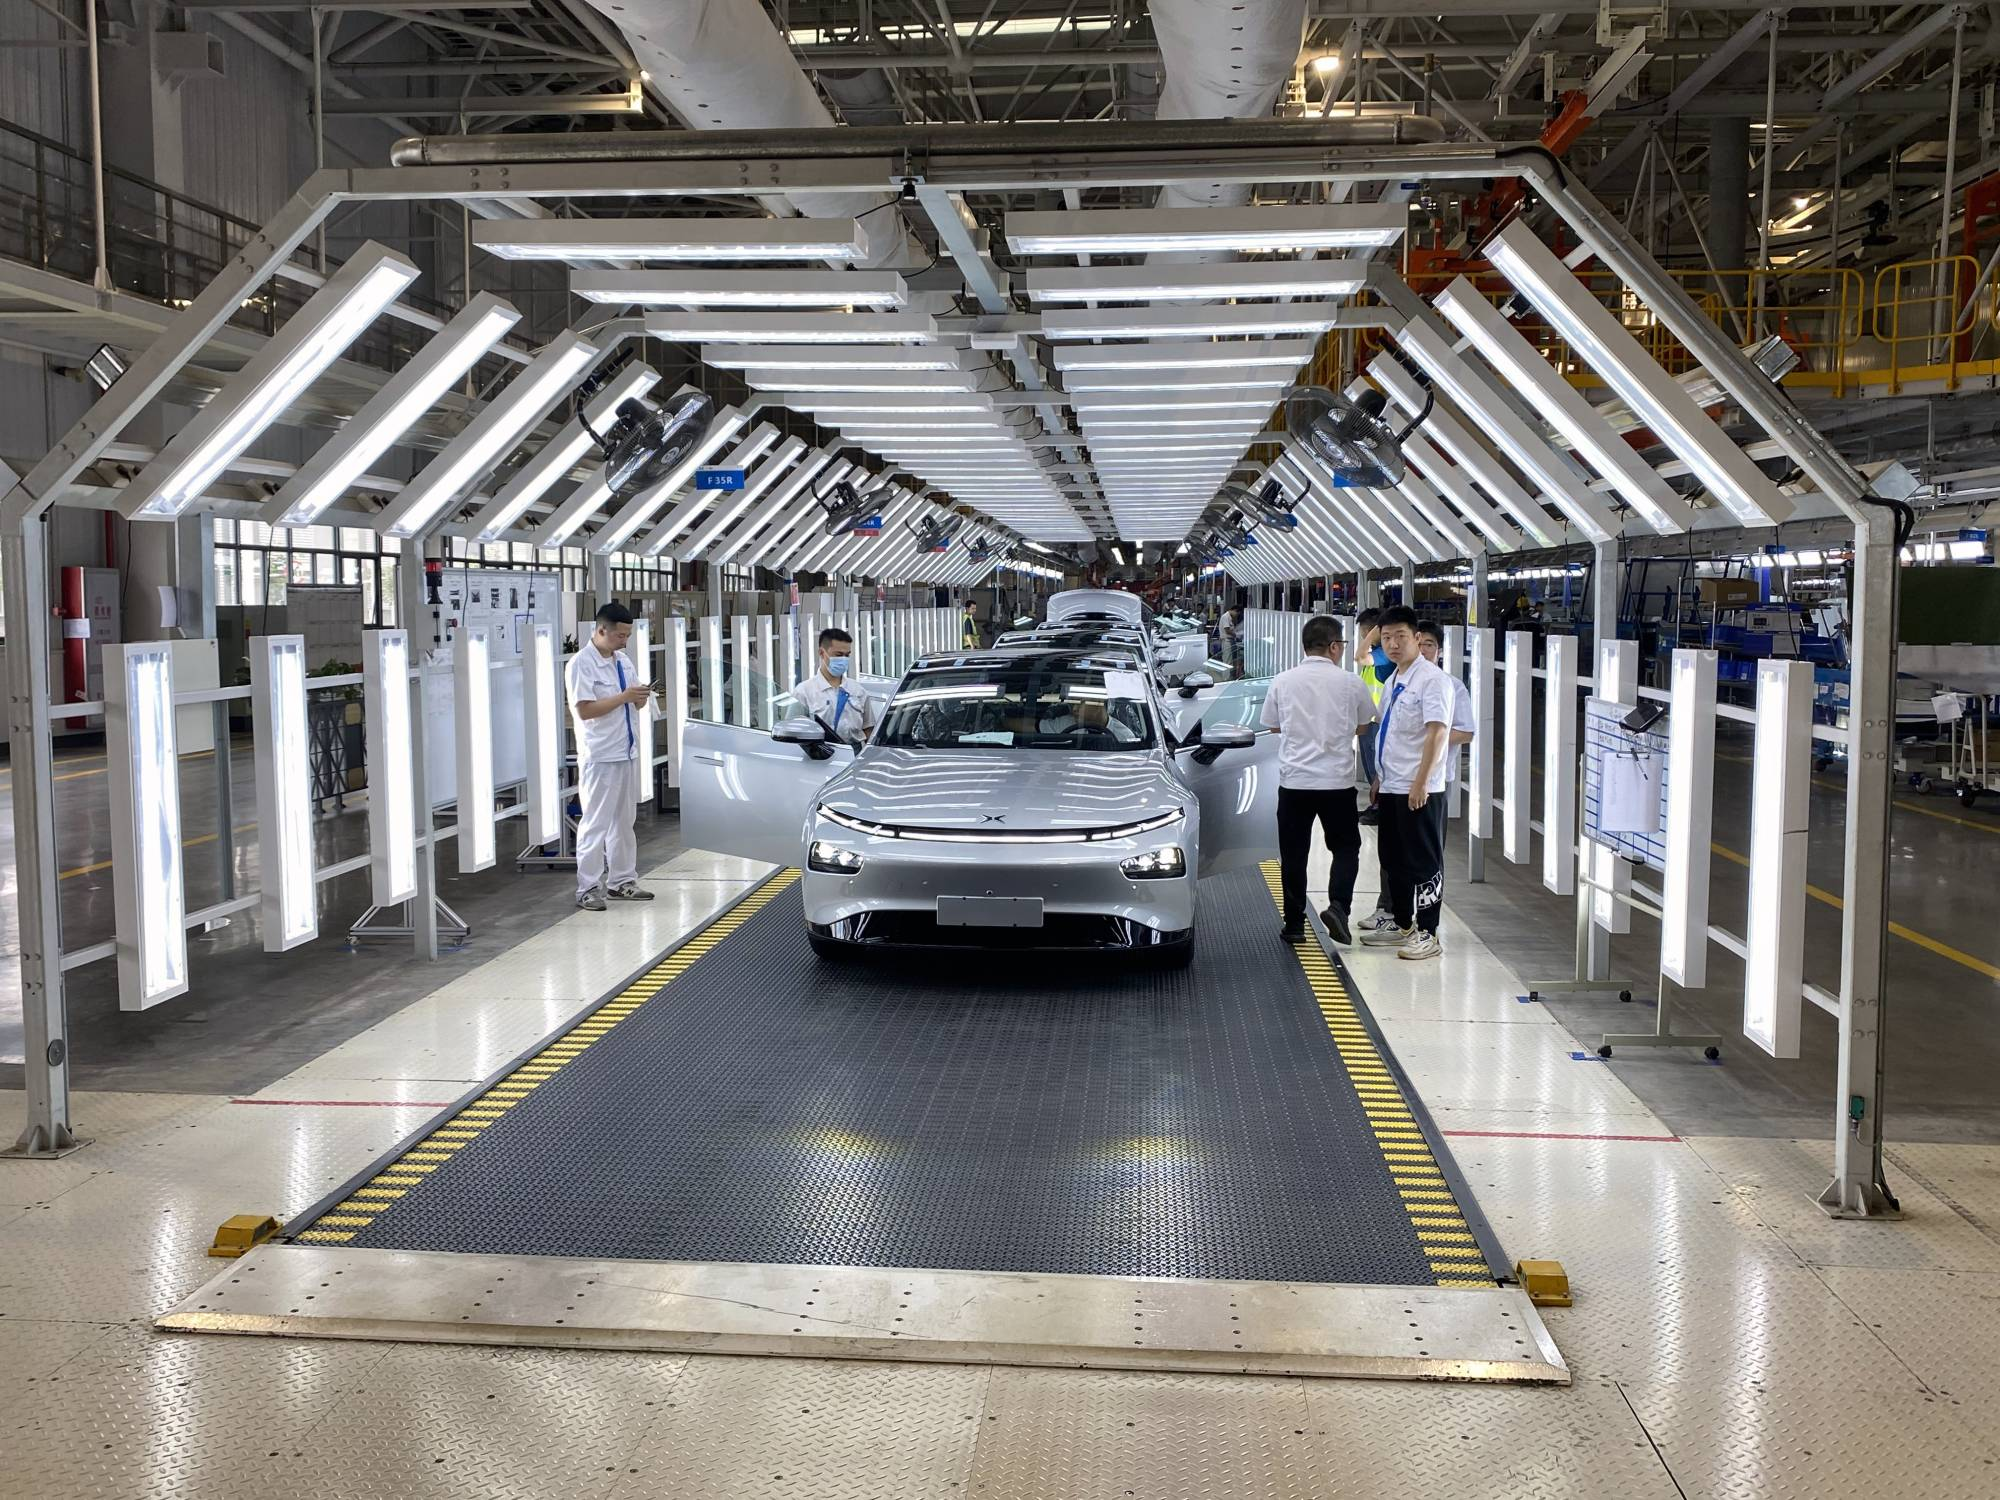 An electric car nears the end of the assembly line at Xpeng's factory in Zhaoqing, China. China will be making over 8 million electric cars a year by 2028, estimates LMC Automotive, a global data firm, compared with 1 million last year. Europe is on track to make 5.7 million fully electric cars by then. | KEITH BRADSHER / THE NEW YORK TIMES